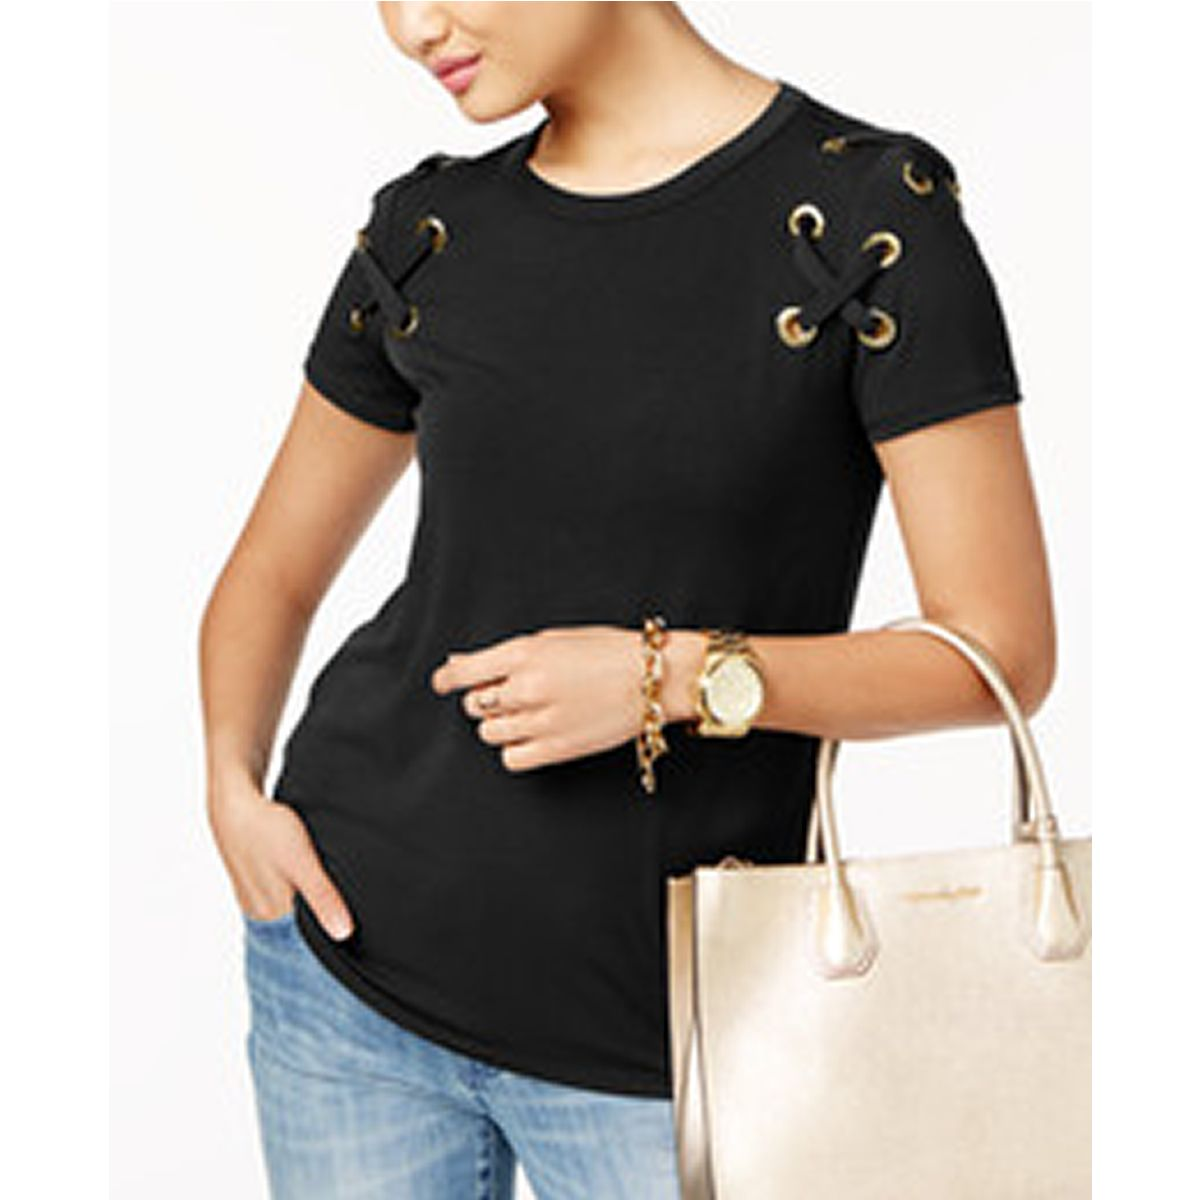 400c47562 Michael Kors Womens Tops - Macy's